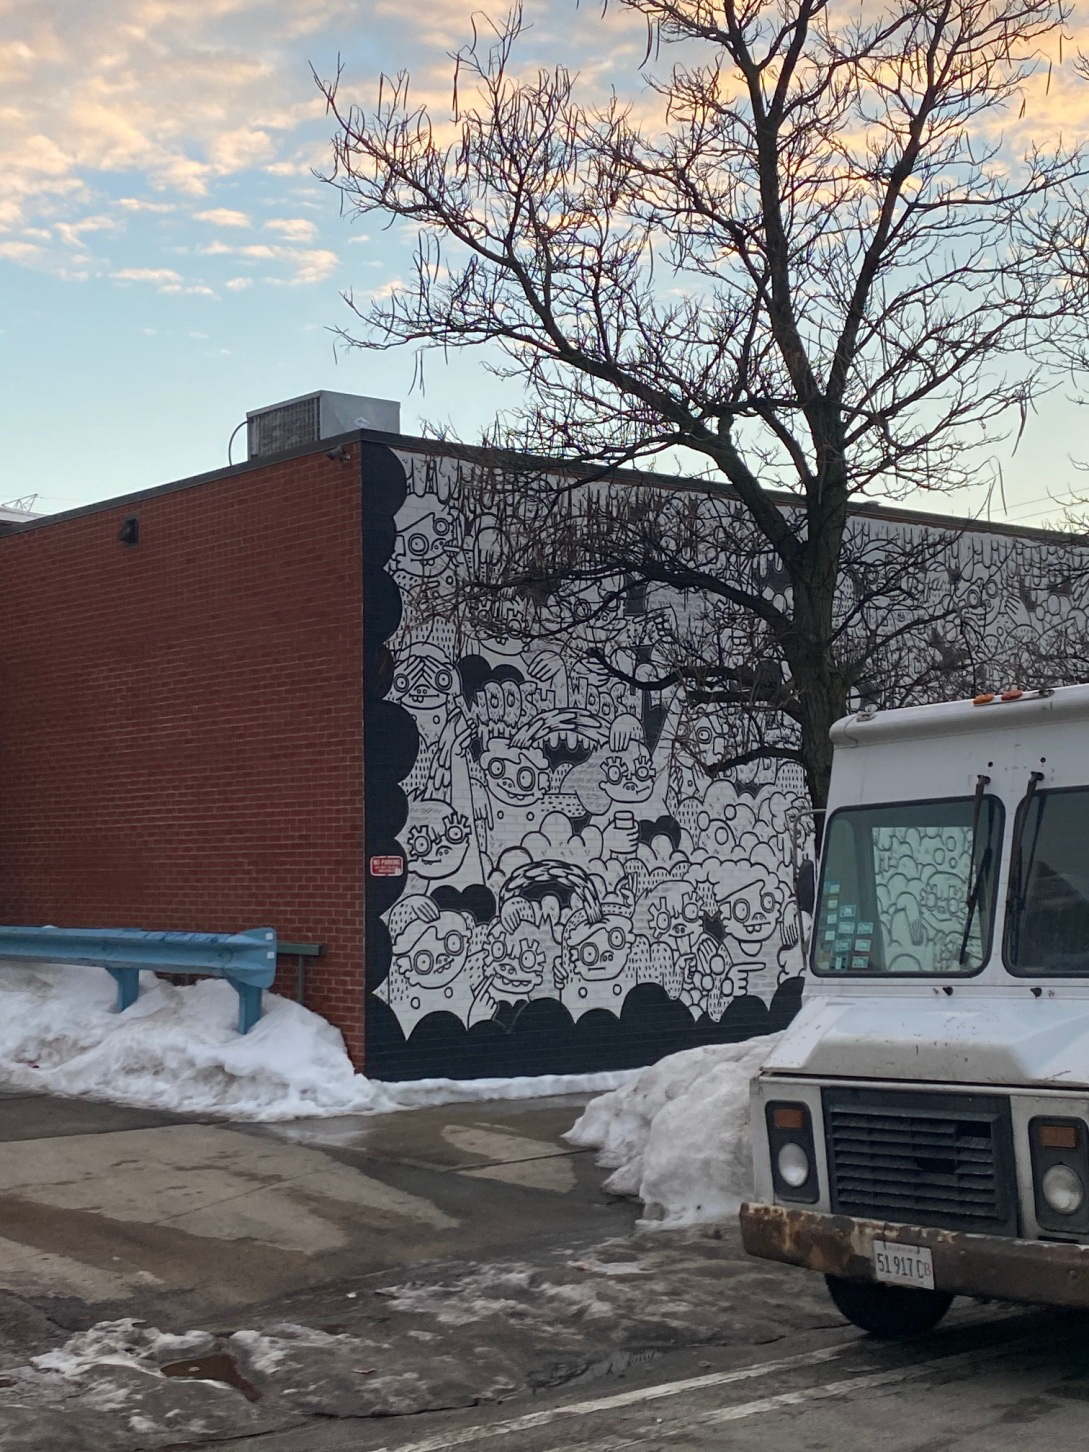 Delivering art to Chicago